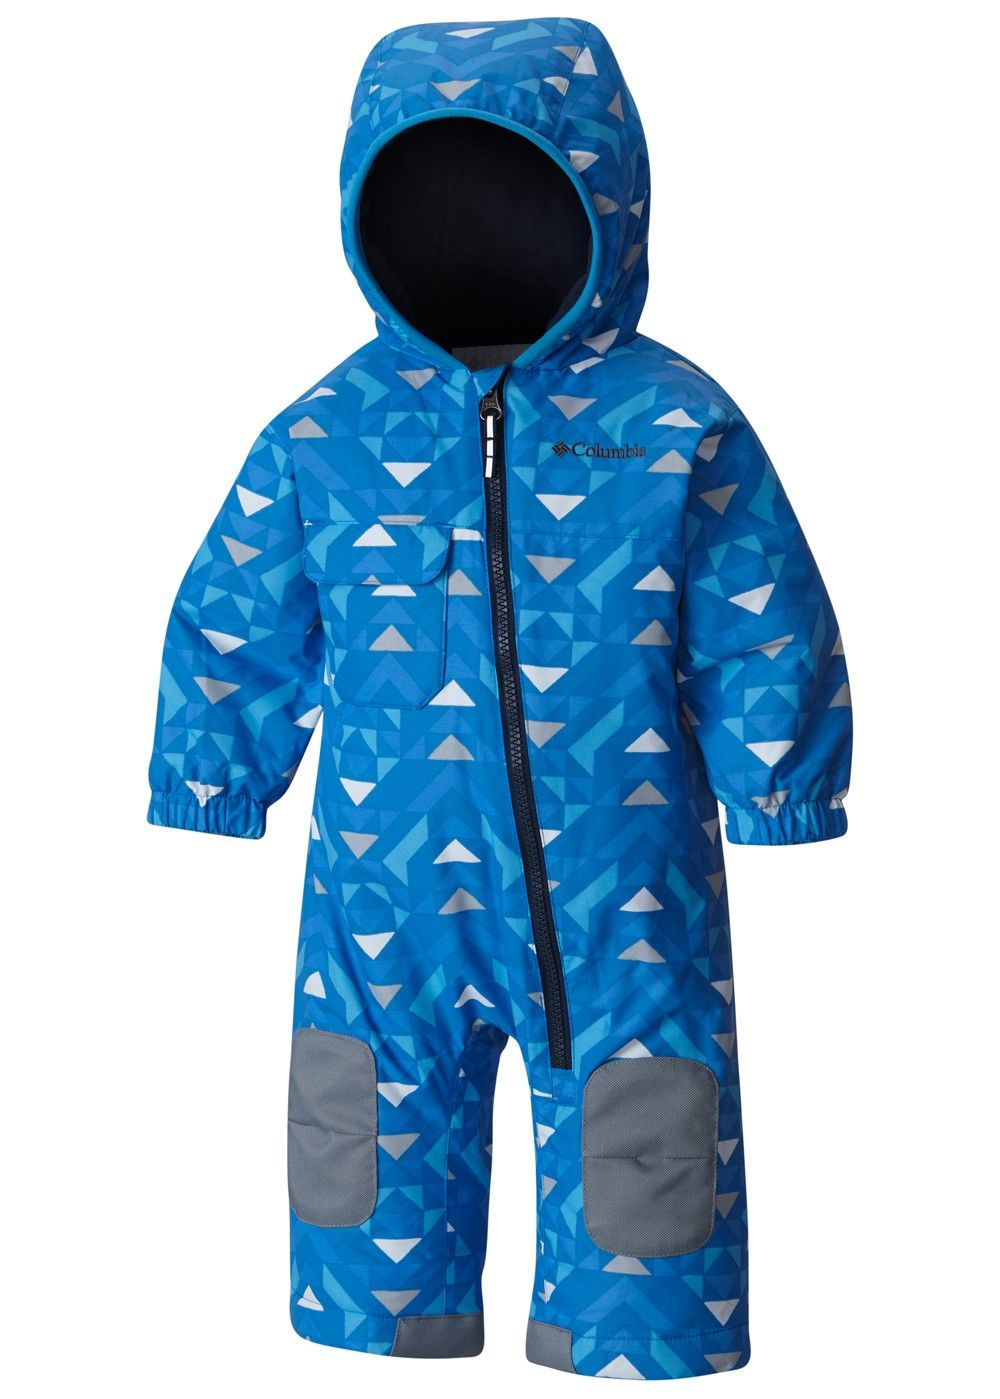 d806cdd8f Columbia Toddler Hot-Tot Suit | Traveling with Kids | Winter suit ...